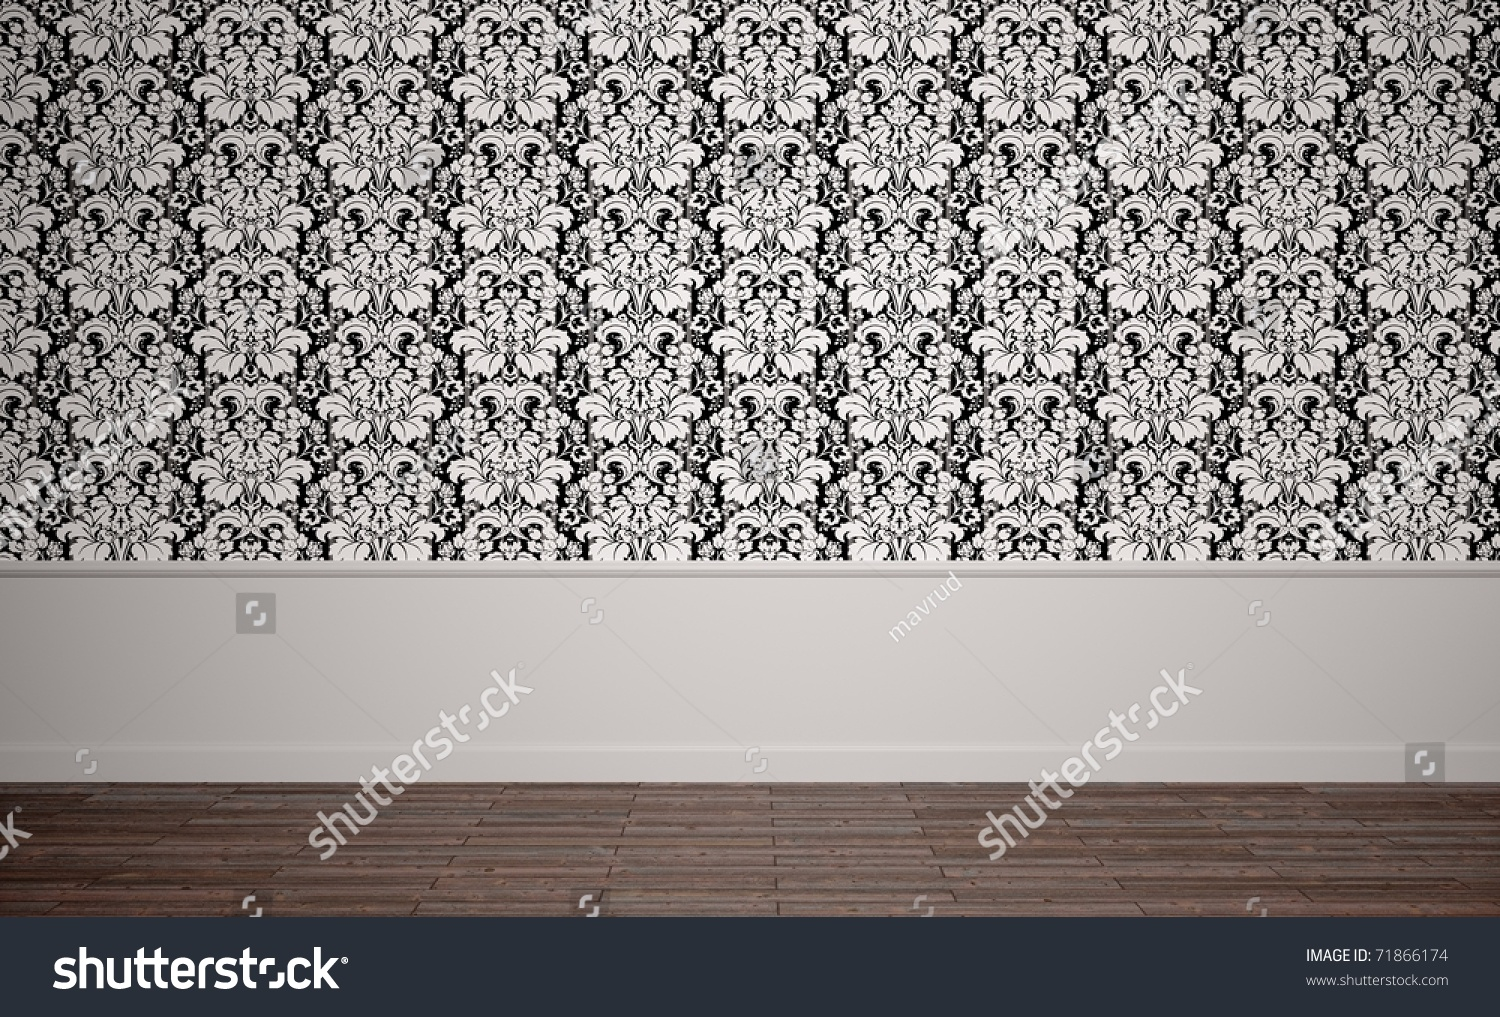 3d interior wallpaper background stock photo 71866174 for 3d interior wallpaper